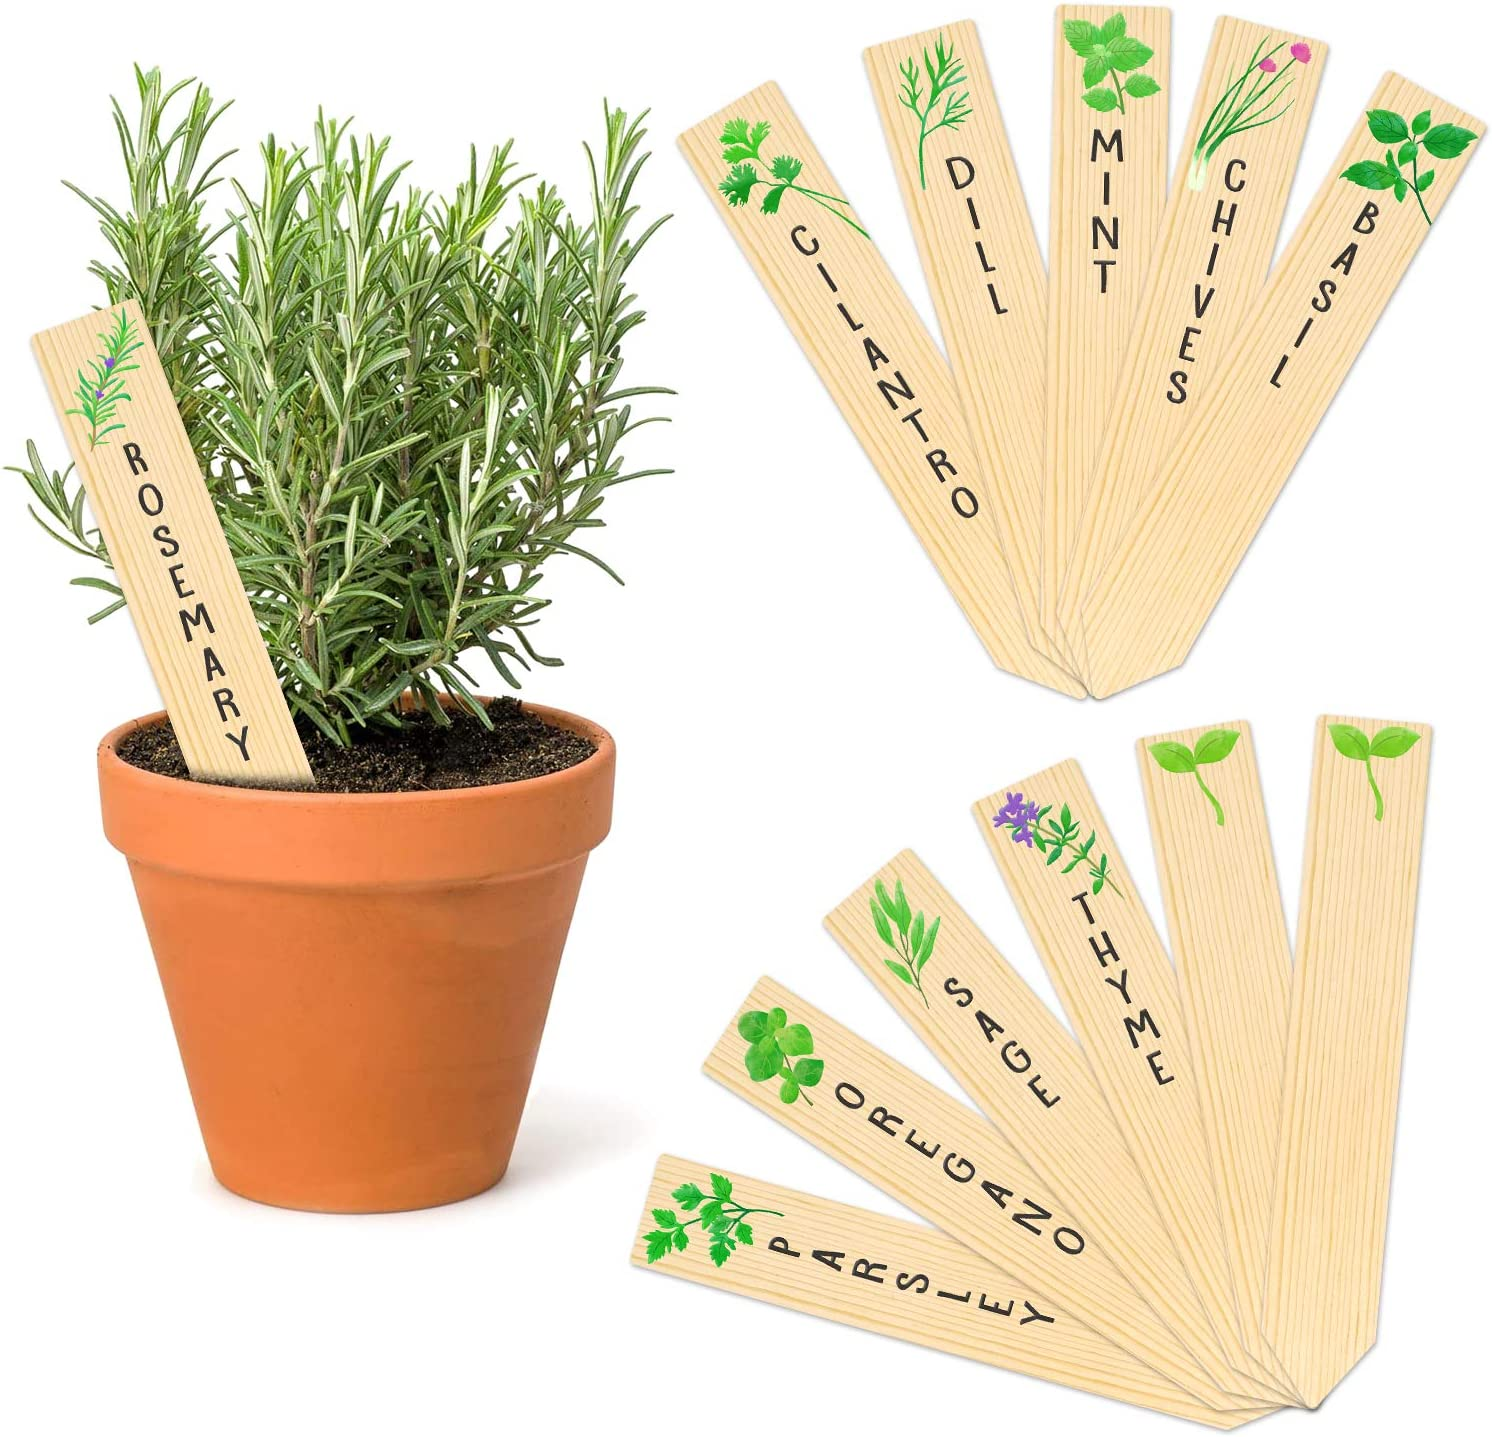 12-Pack Planted Assorted Kitchen Herbs! Huray Rayho Wooden Plant Labels Outdoor Indoor Garden Stakes Garden Gifts for Grandparents Garden Markers Garden Accessories